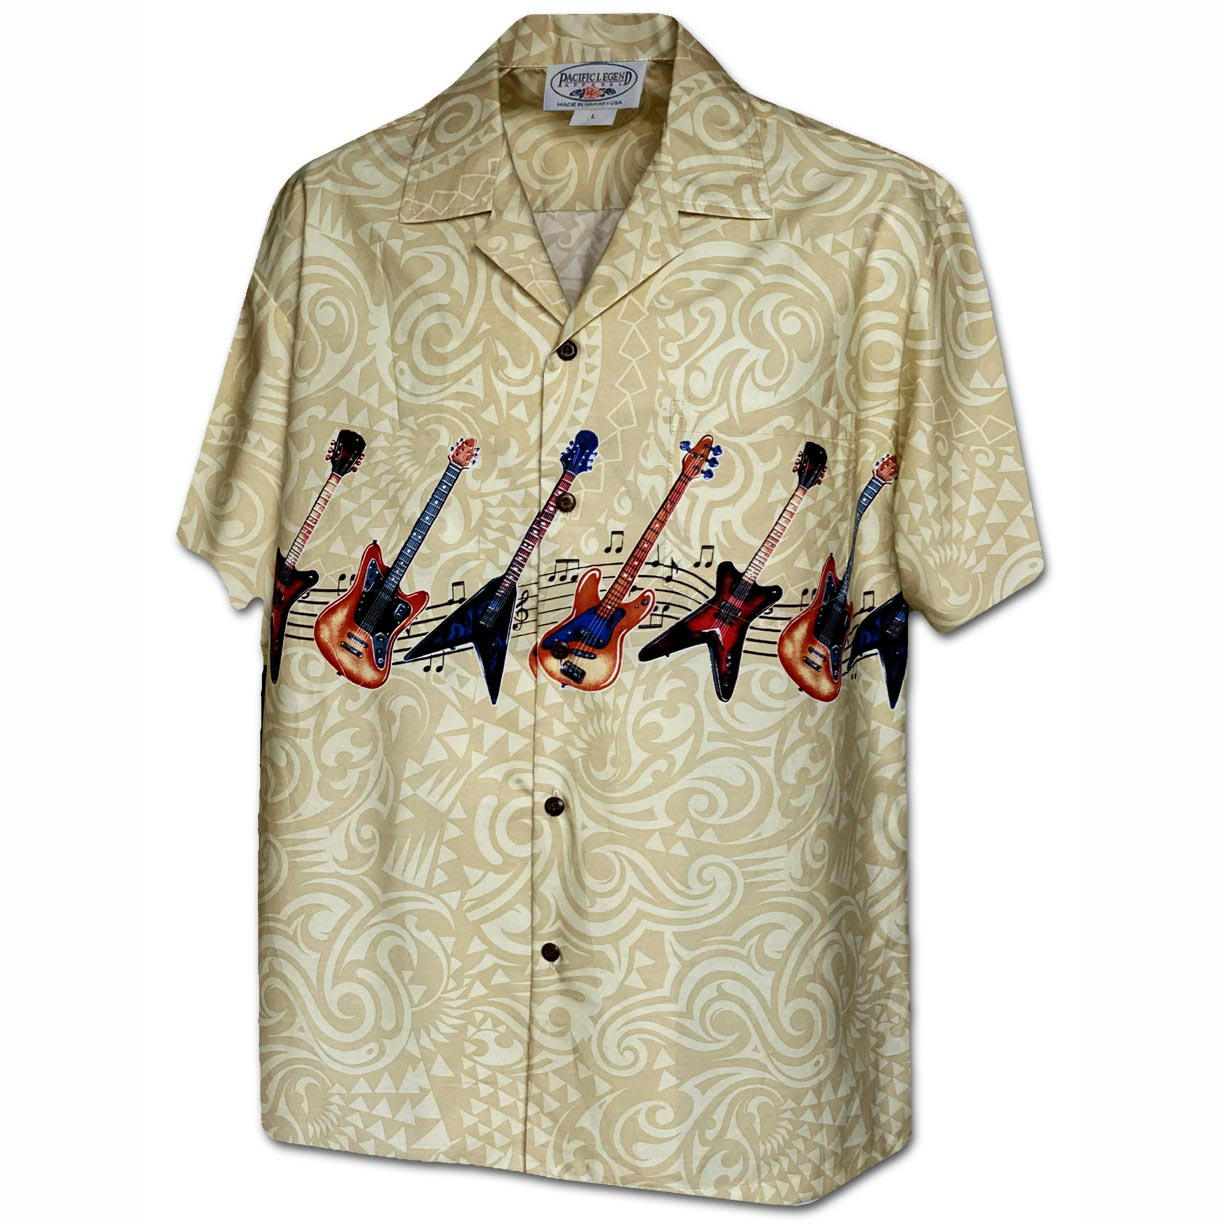 Rockin' Guitar Khaki Hawaiian Shirt